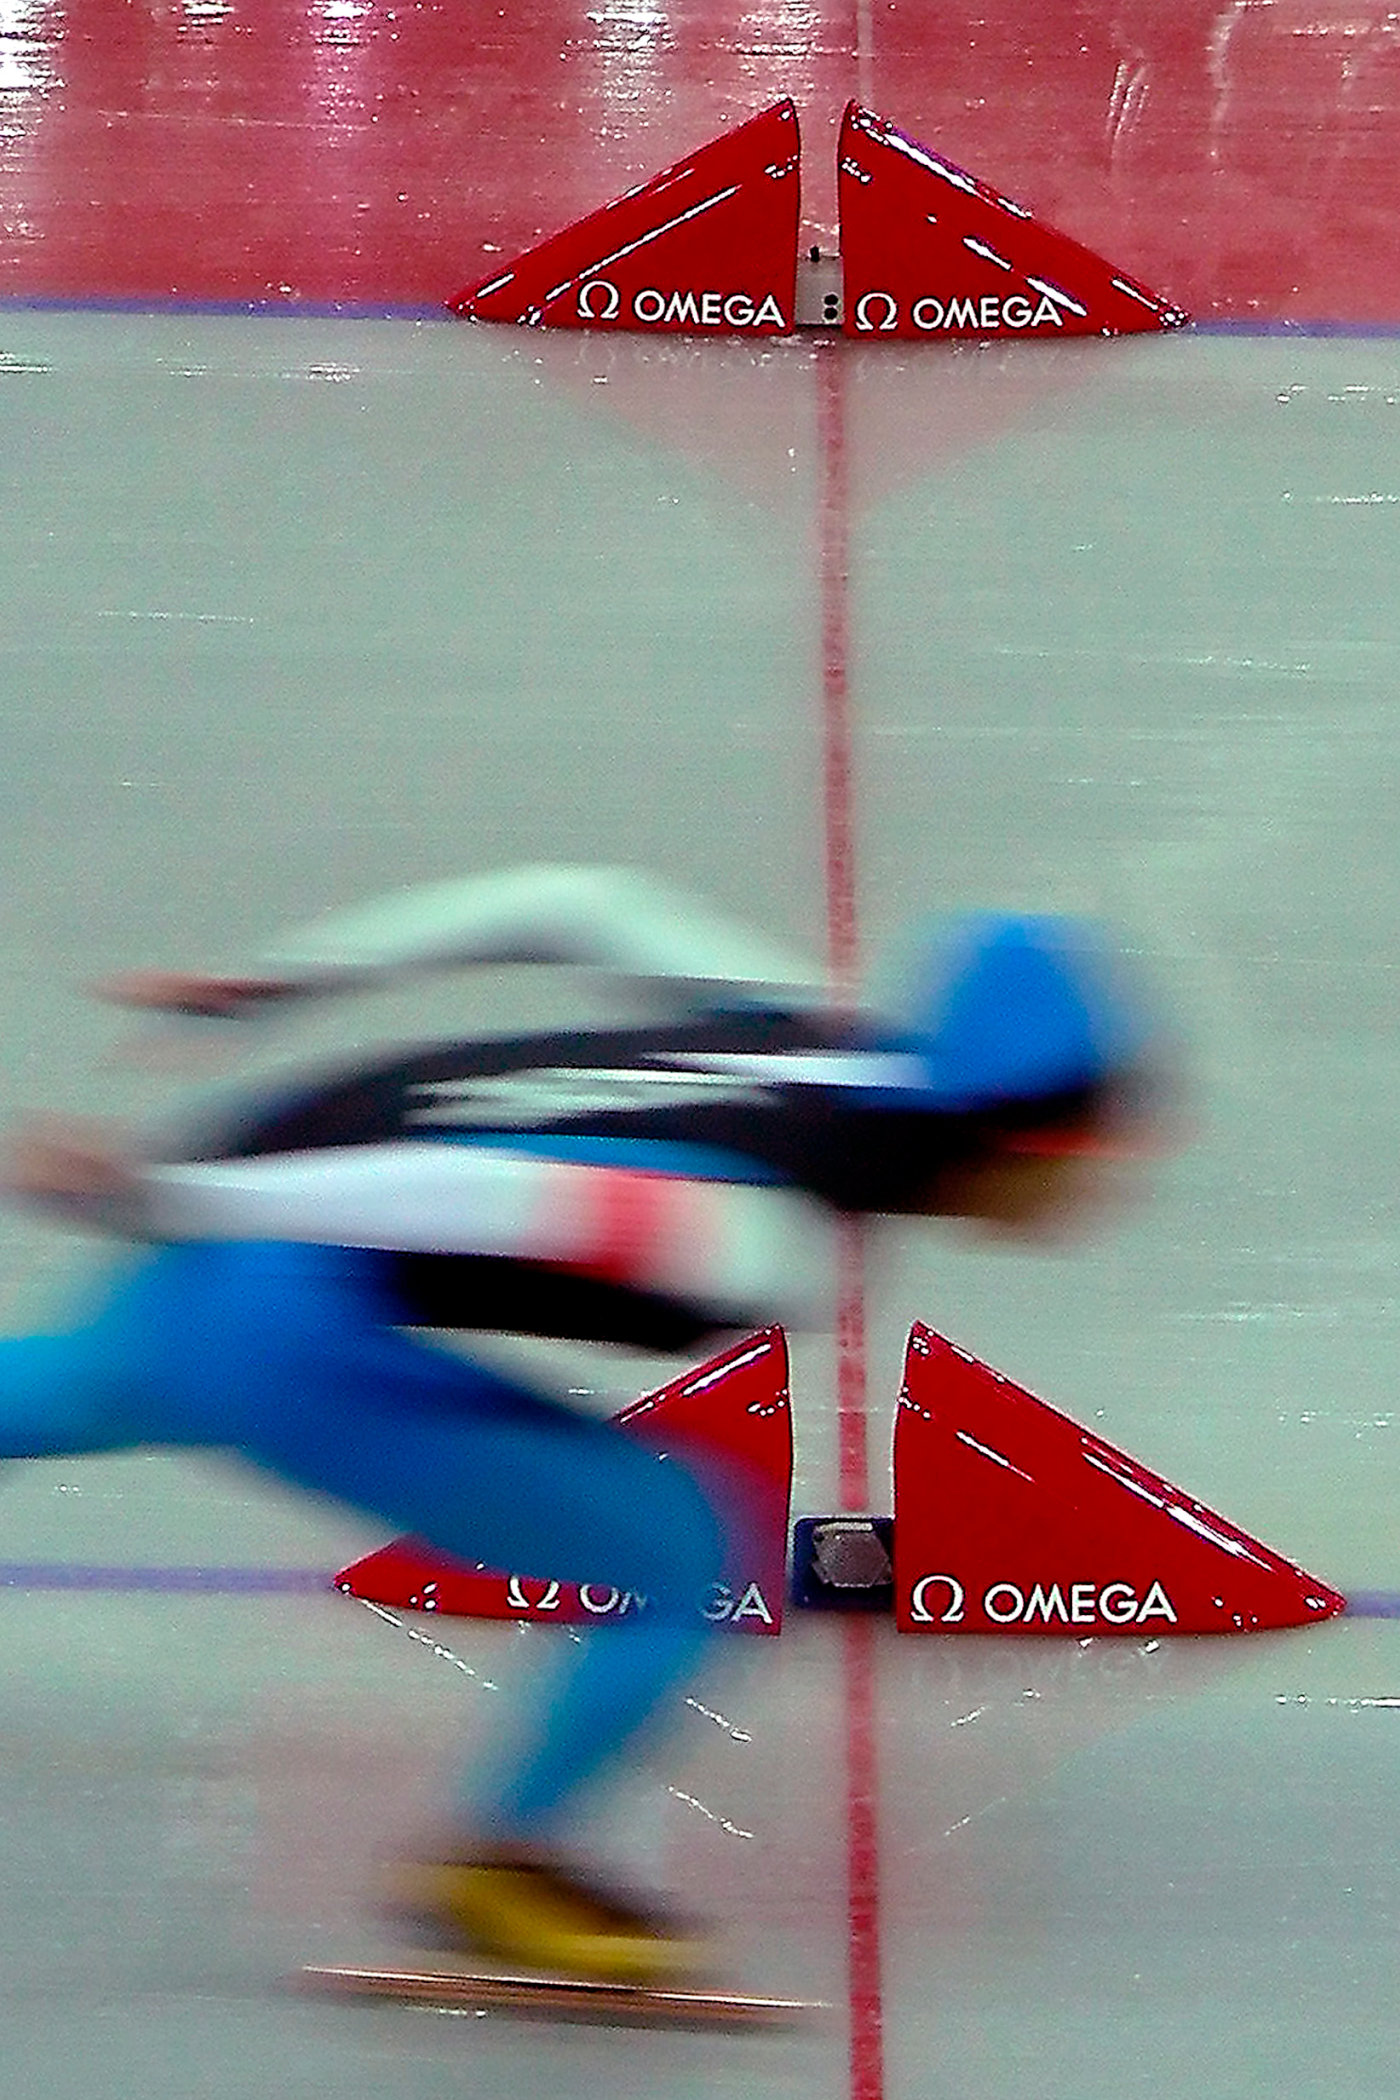 A speed skating finish photo from the 2006 Olympics in Turin, Italy.